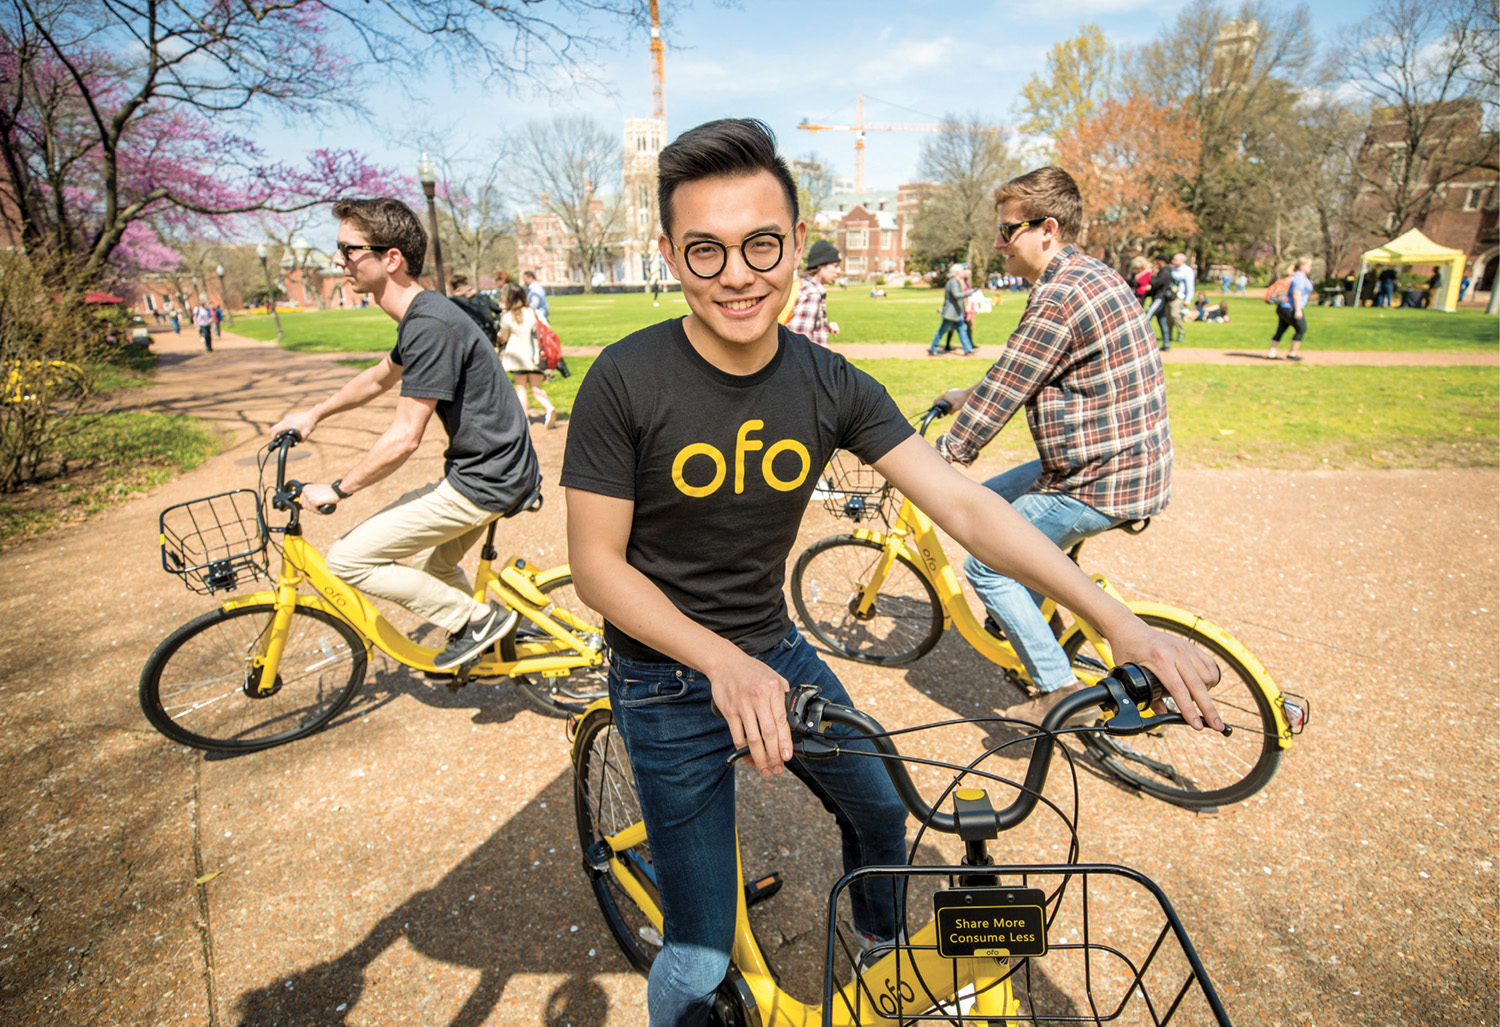 photo of Yalun Feng riding an ofo bicycle